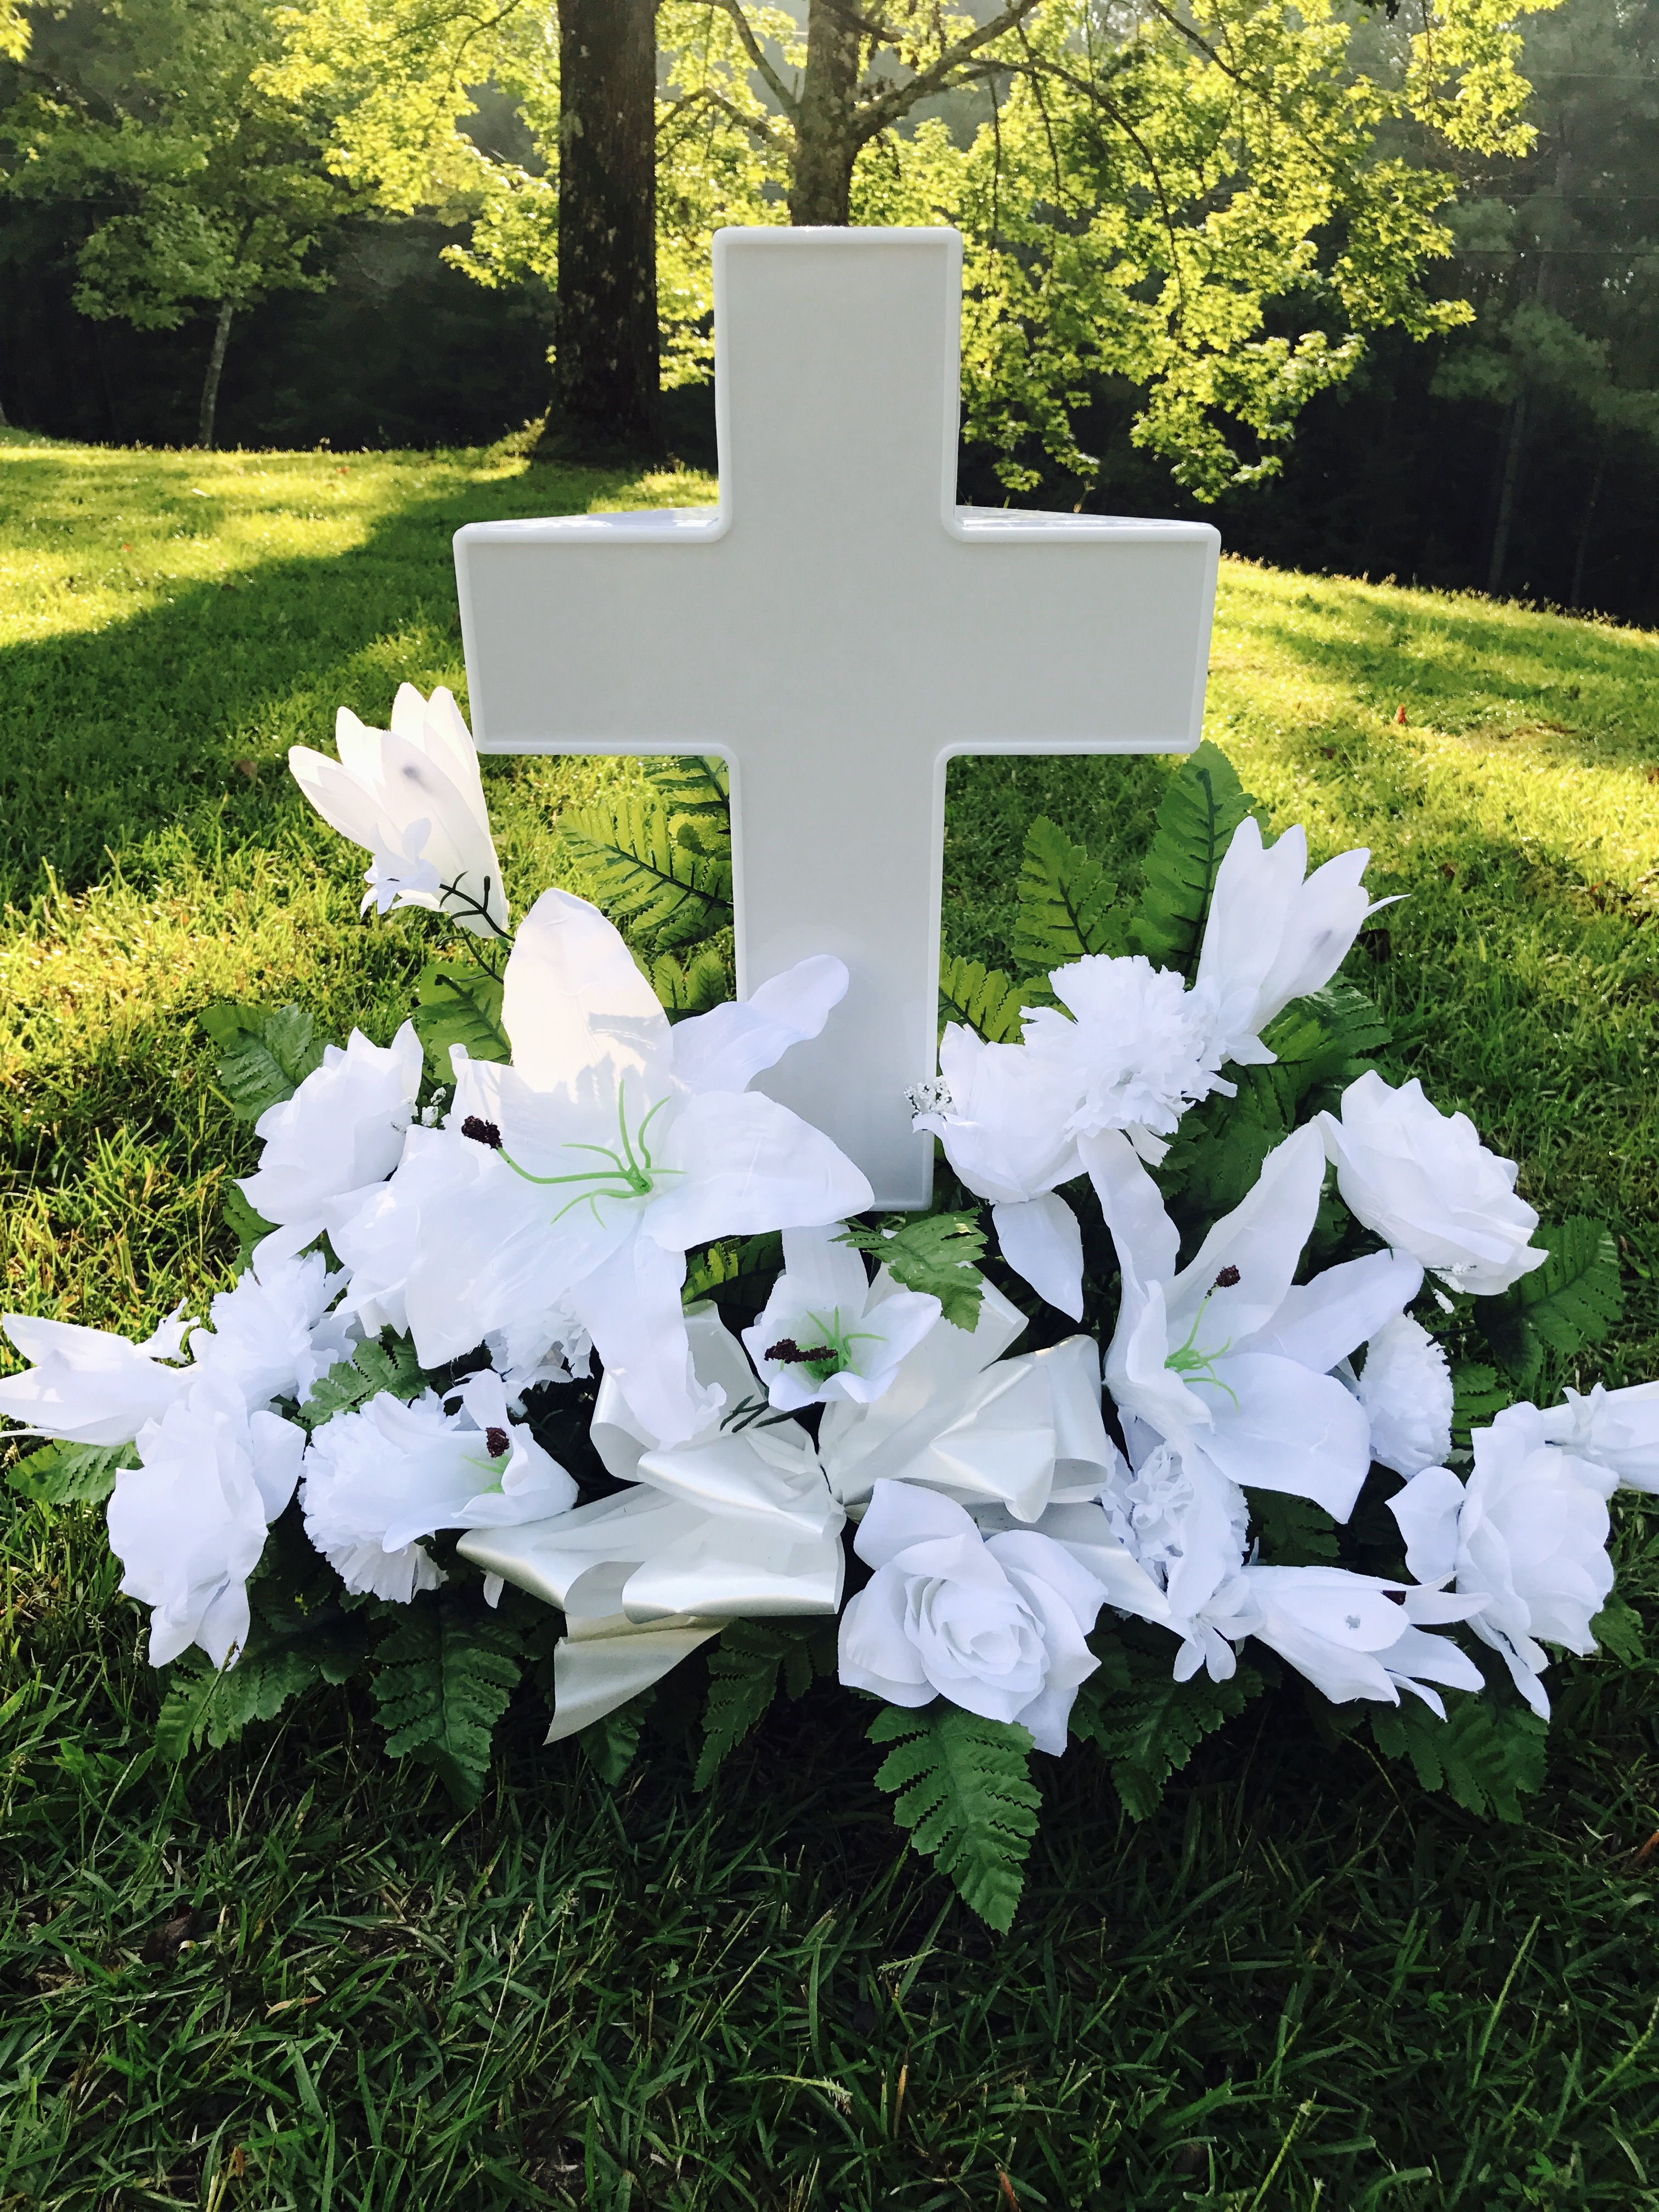 Www Solarlightedcross Com Cross Pp 0 Cemetary Decorations Vintage Candles Grave Decorations